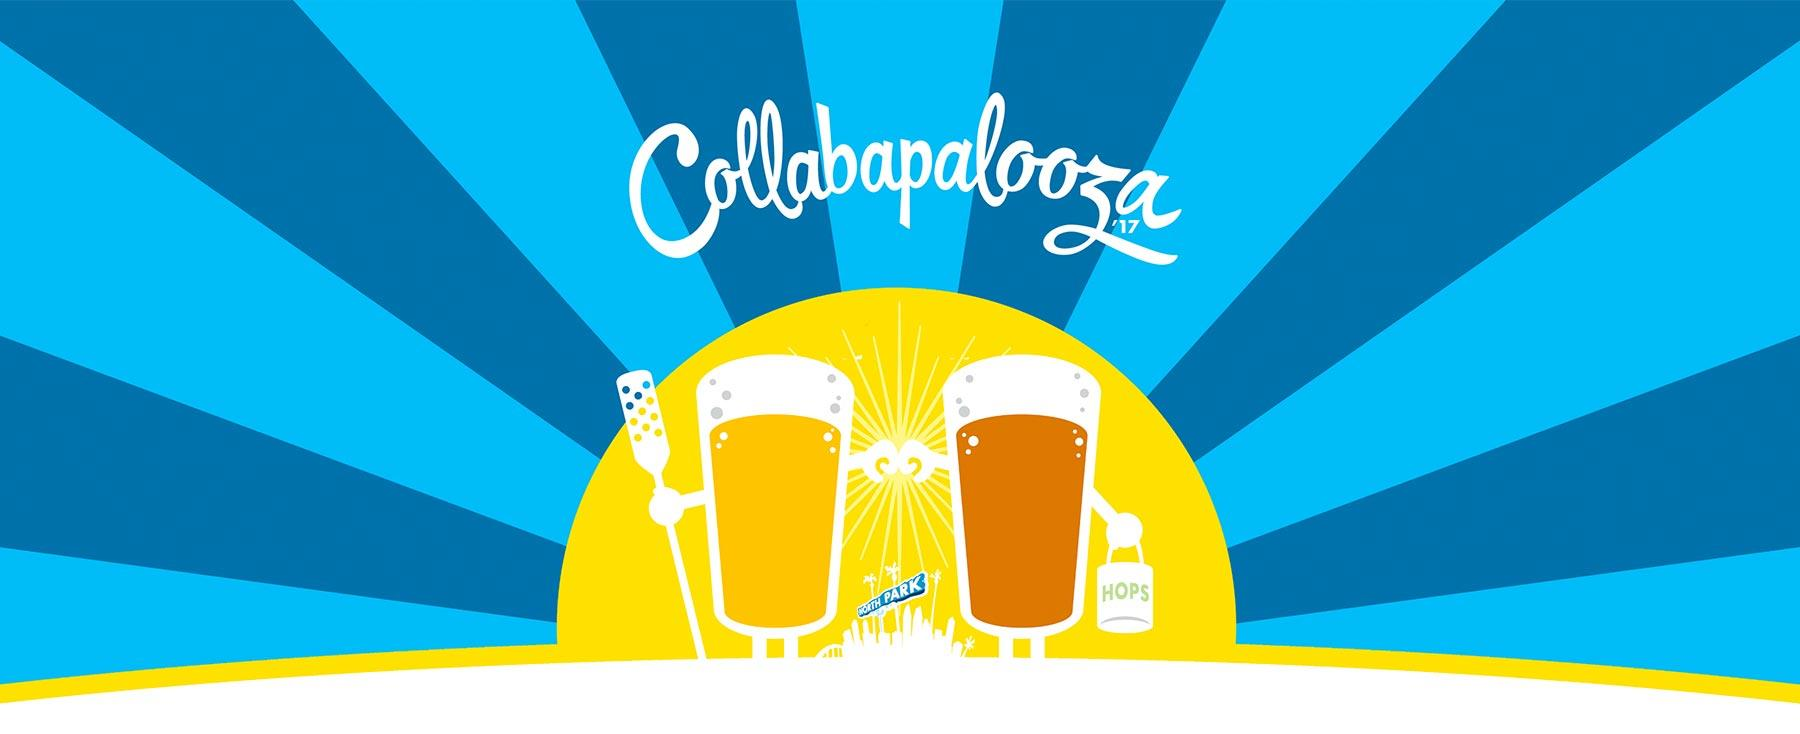 Collabapalooza - Top Things to Do in San Diego